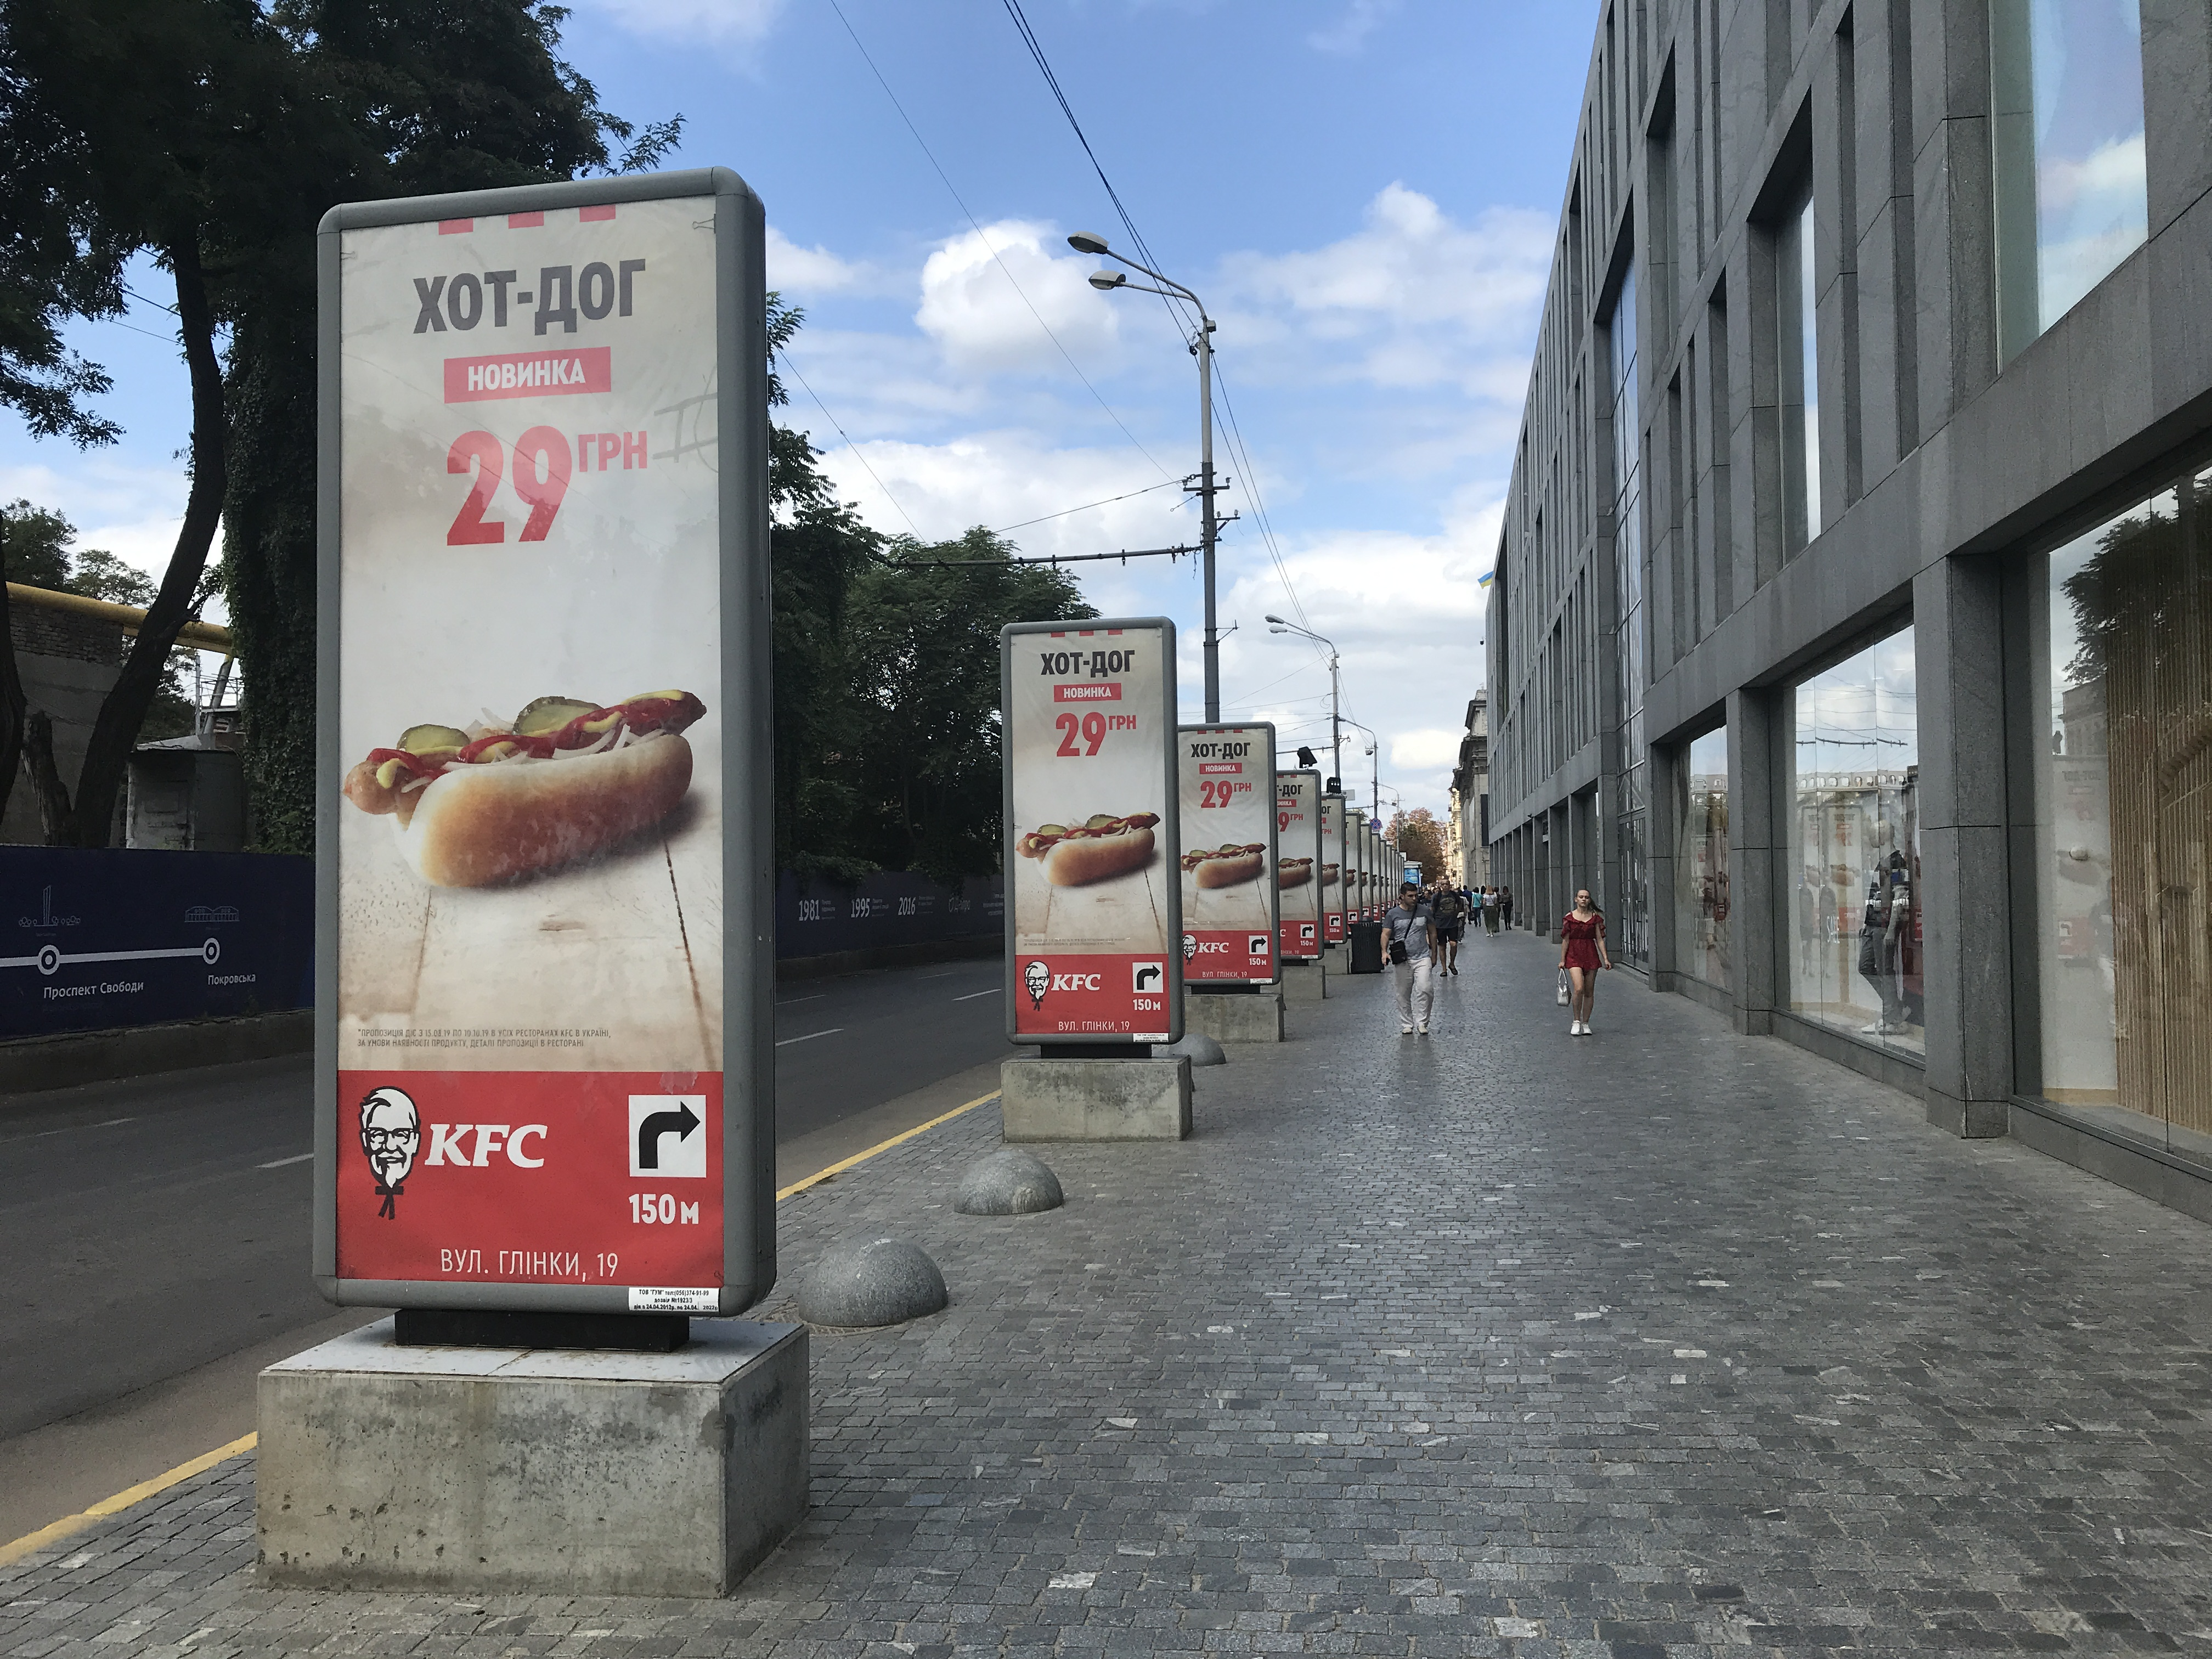 Advertising in Dnipro, Passage shopping center (August 2019)